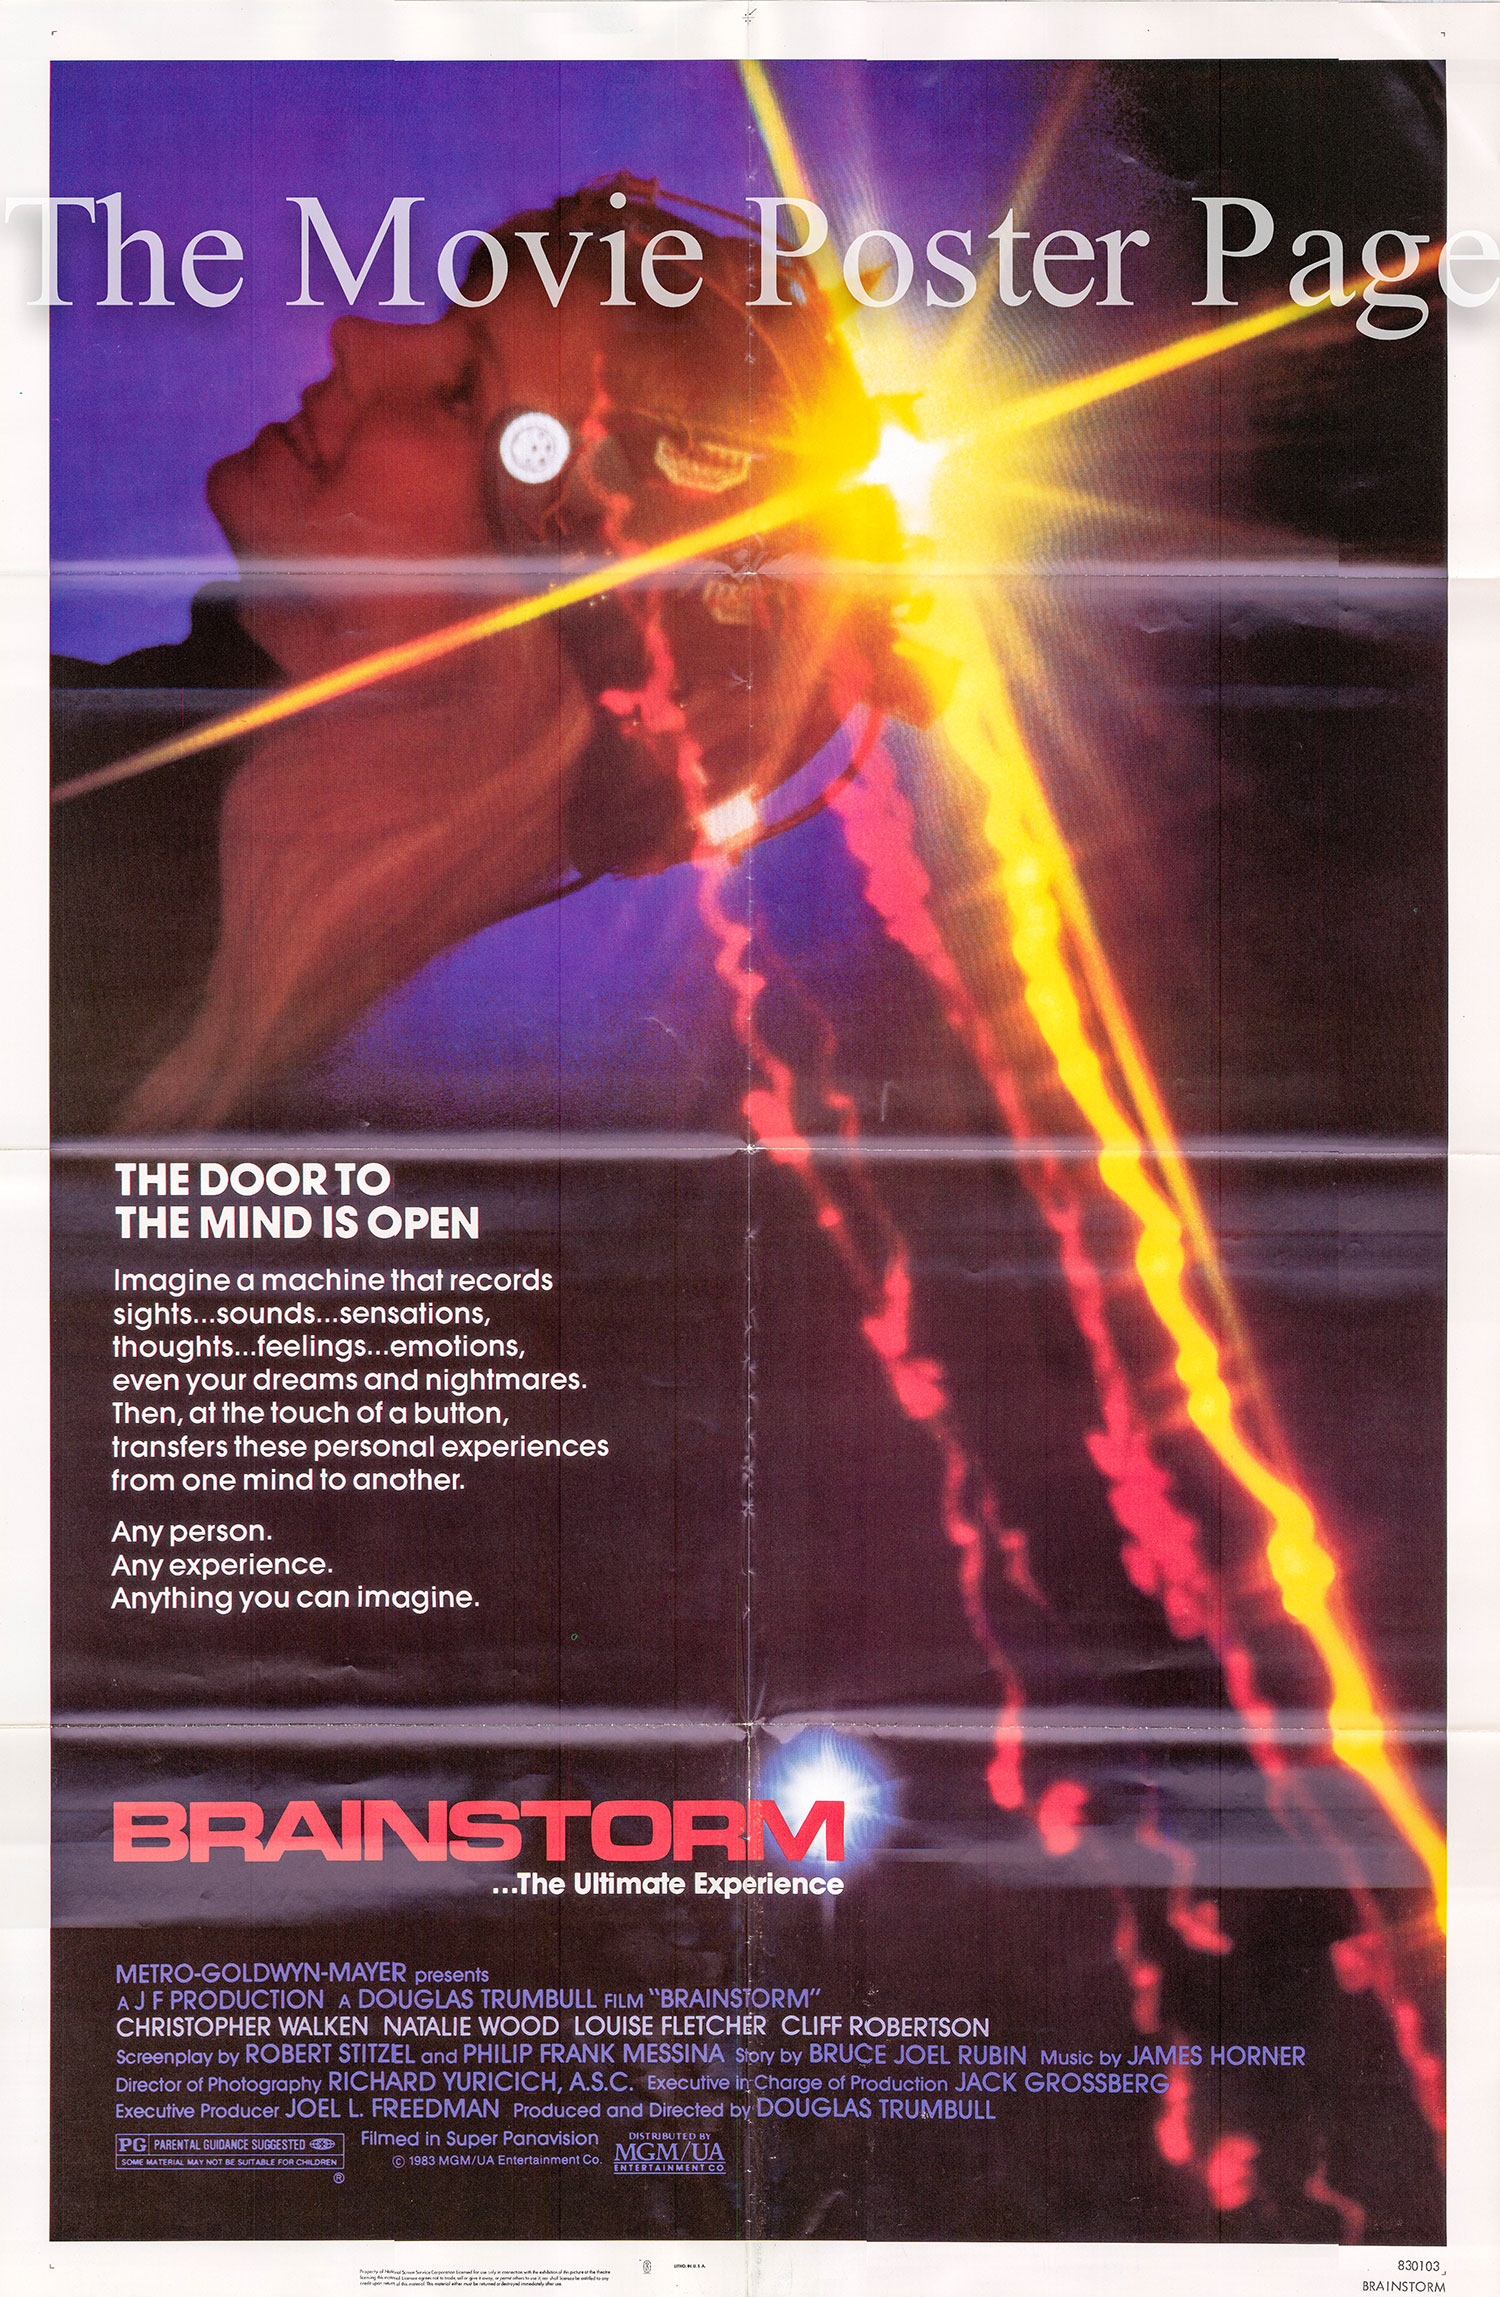 Pictured is a US one-sheet promotional poster for the 1983 Douglas Truumbull film Brainstory starring Christopher Walken as Michael Brace.